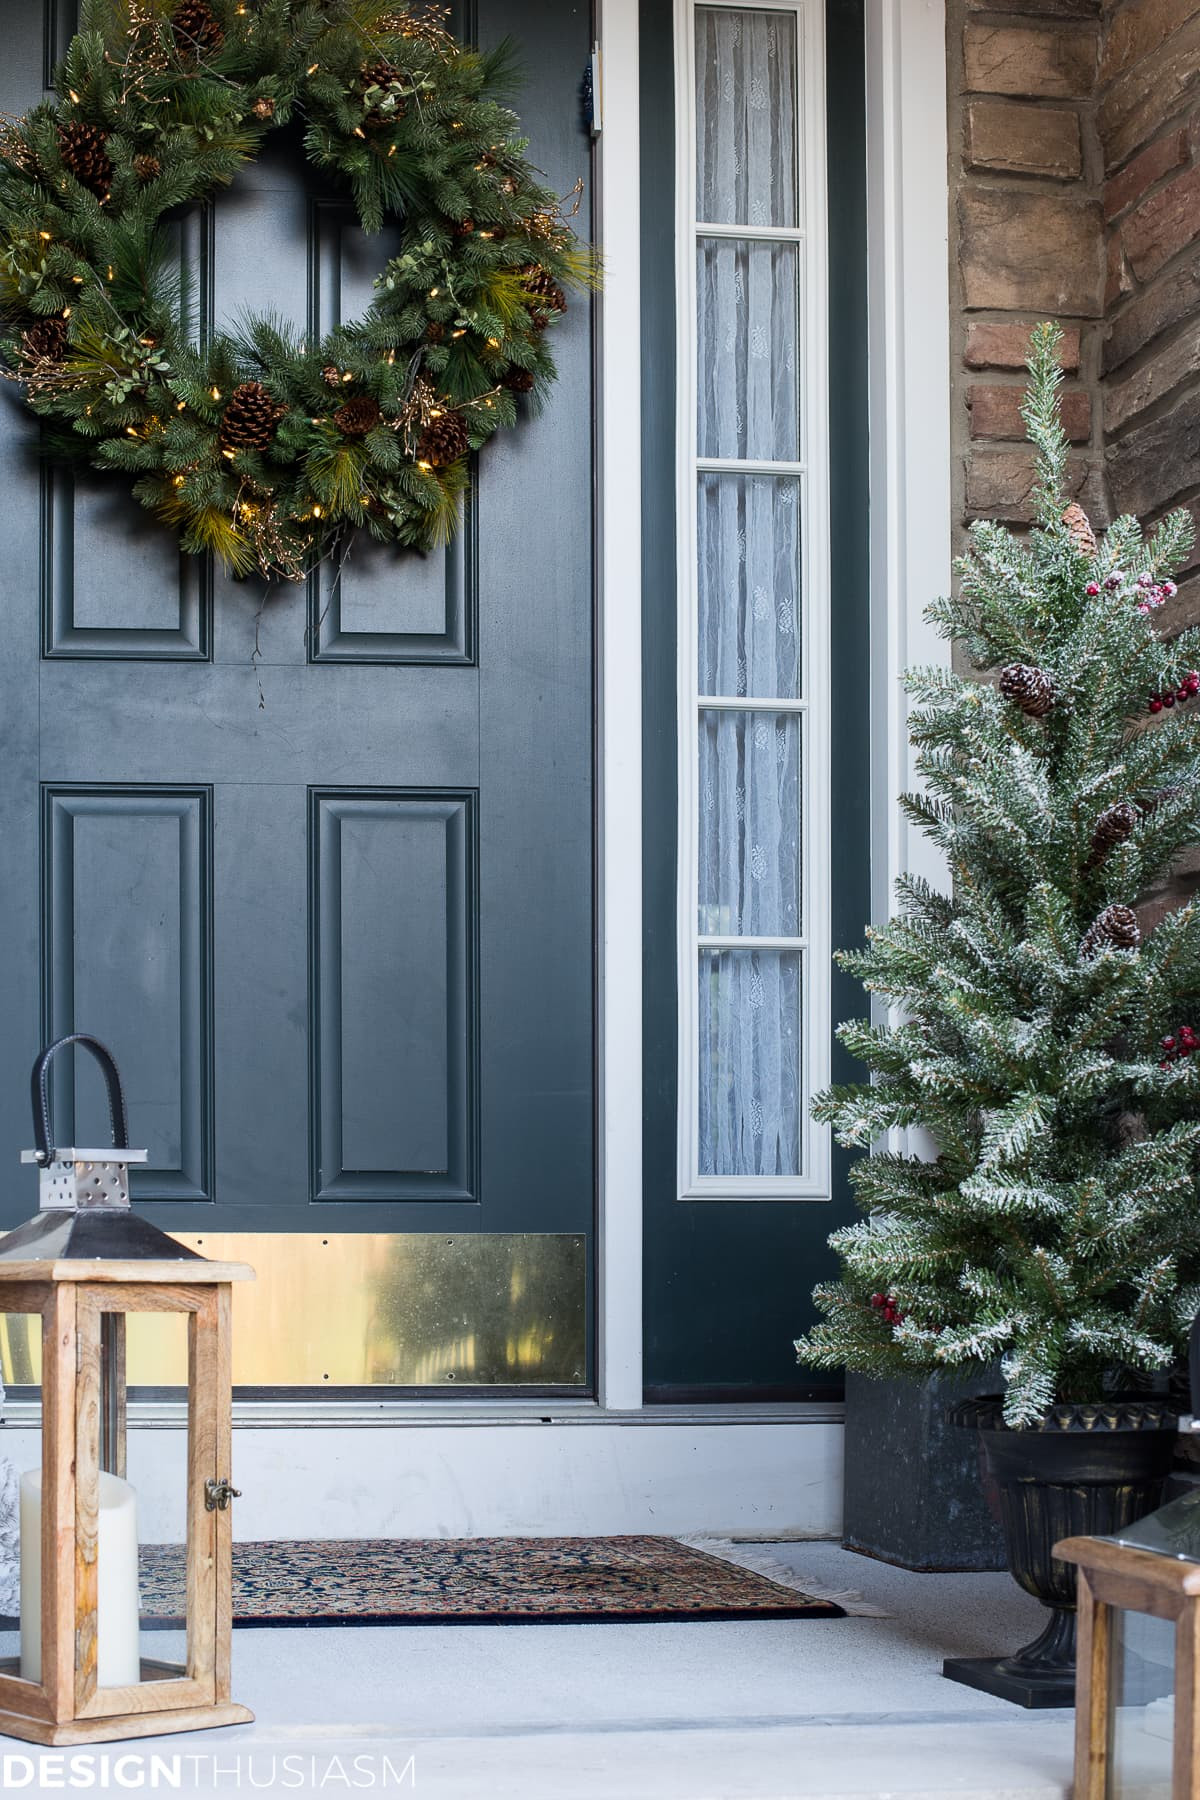 Christmas Decorations For Front Porch  Easy Outdoor Christmas Decorating Ideas for a Tiny Front Porch